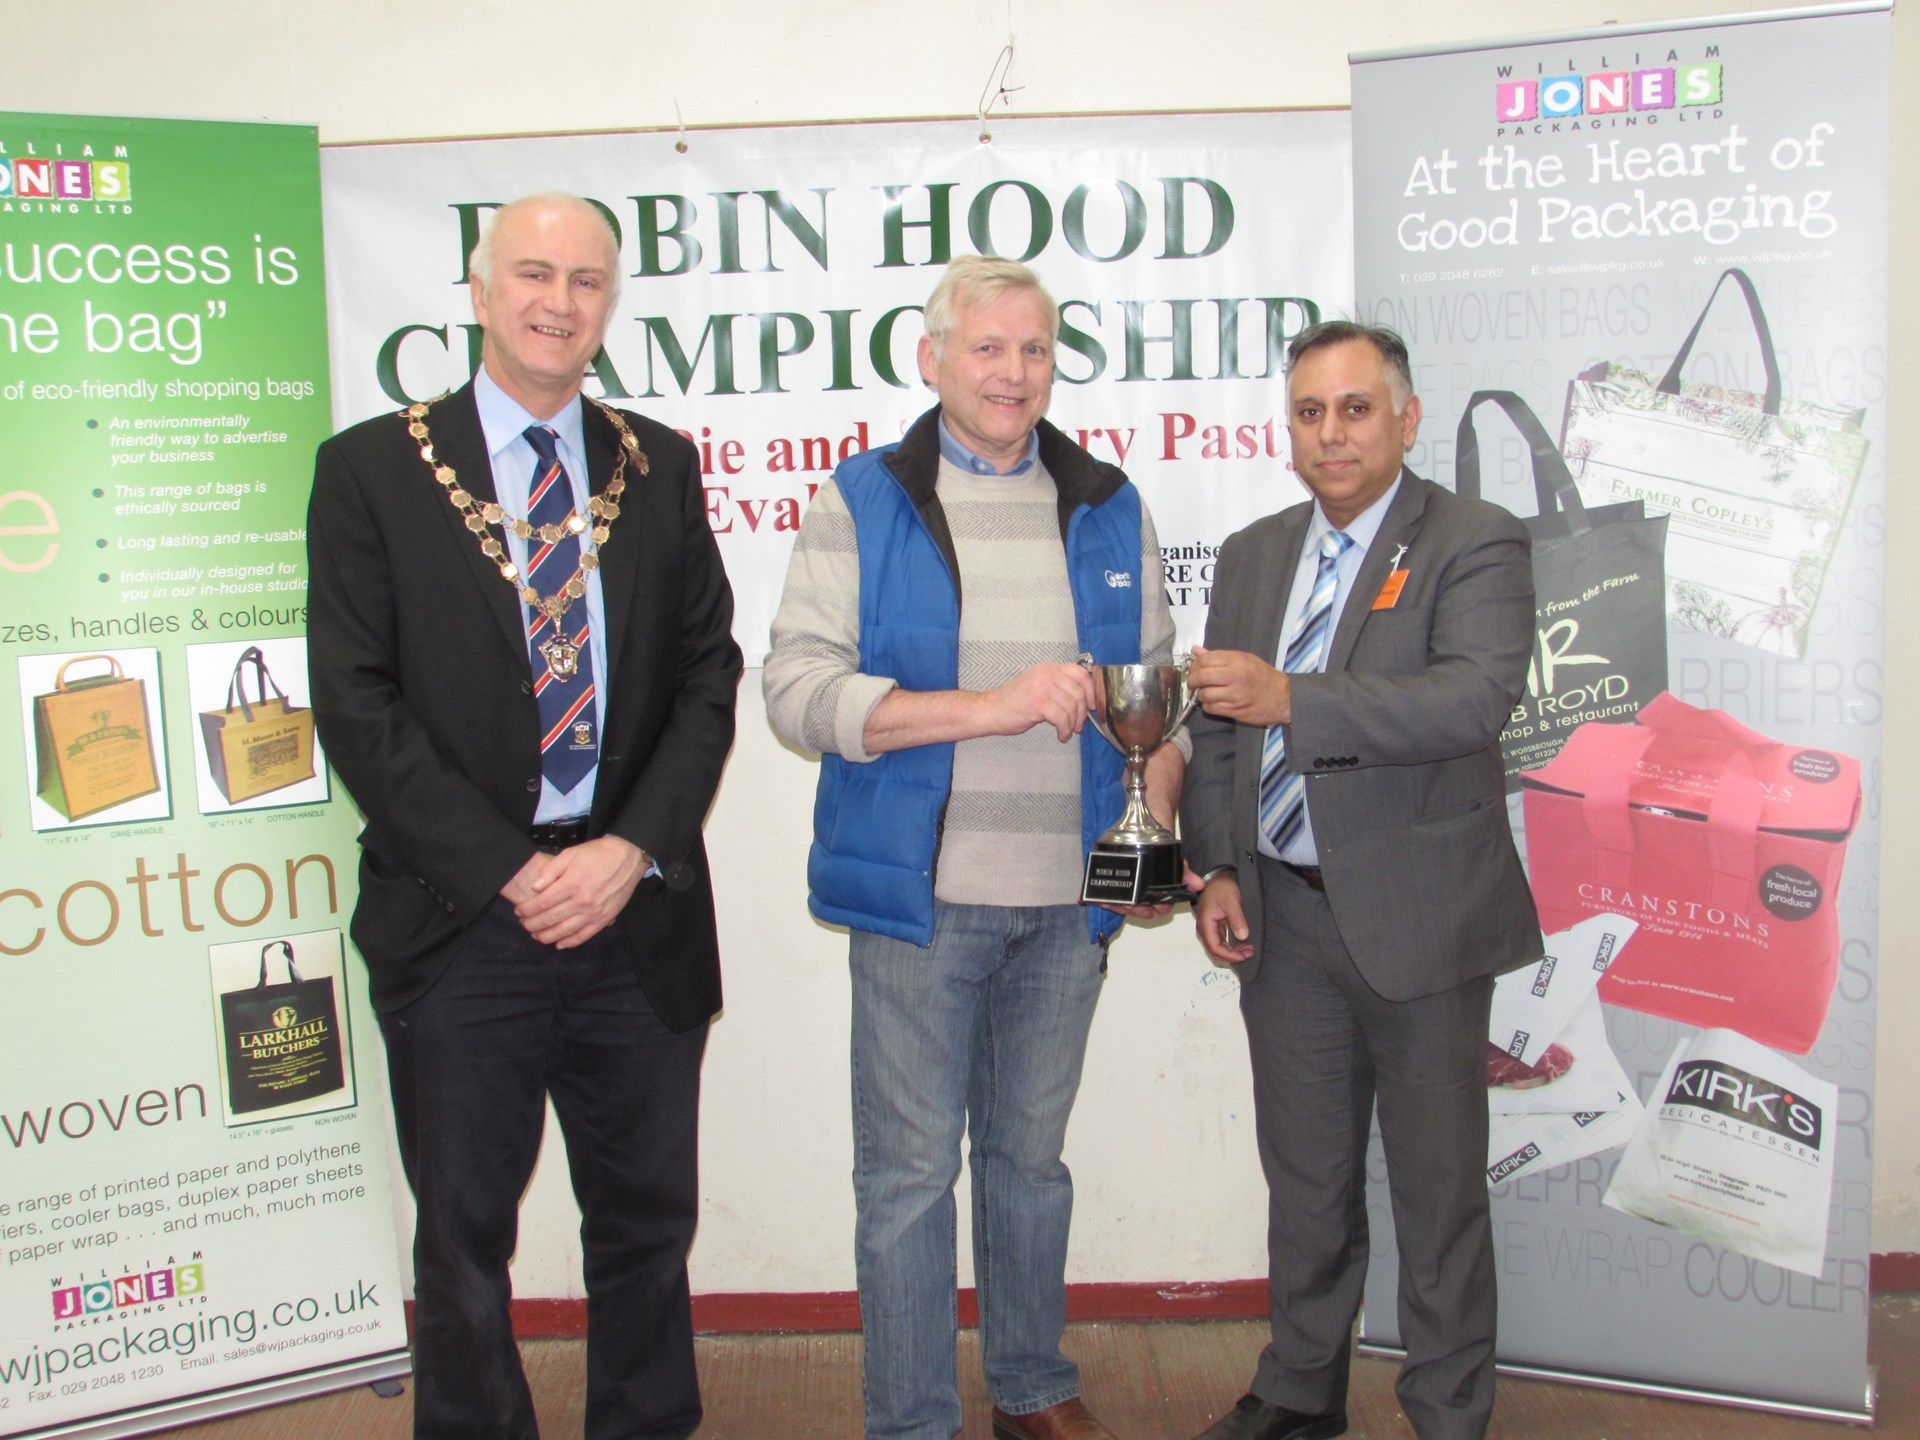 Notts Council Trophy being presented to Michael Kennedy, Holywell, Flintshire by Sat Lola with President of the Nottinghamshire Council of Retail Meat Traders, Neil Curtis.